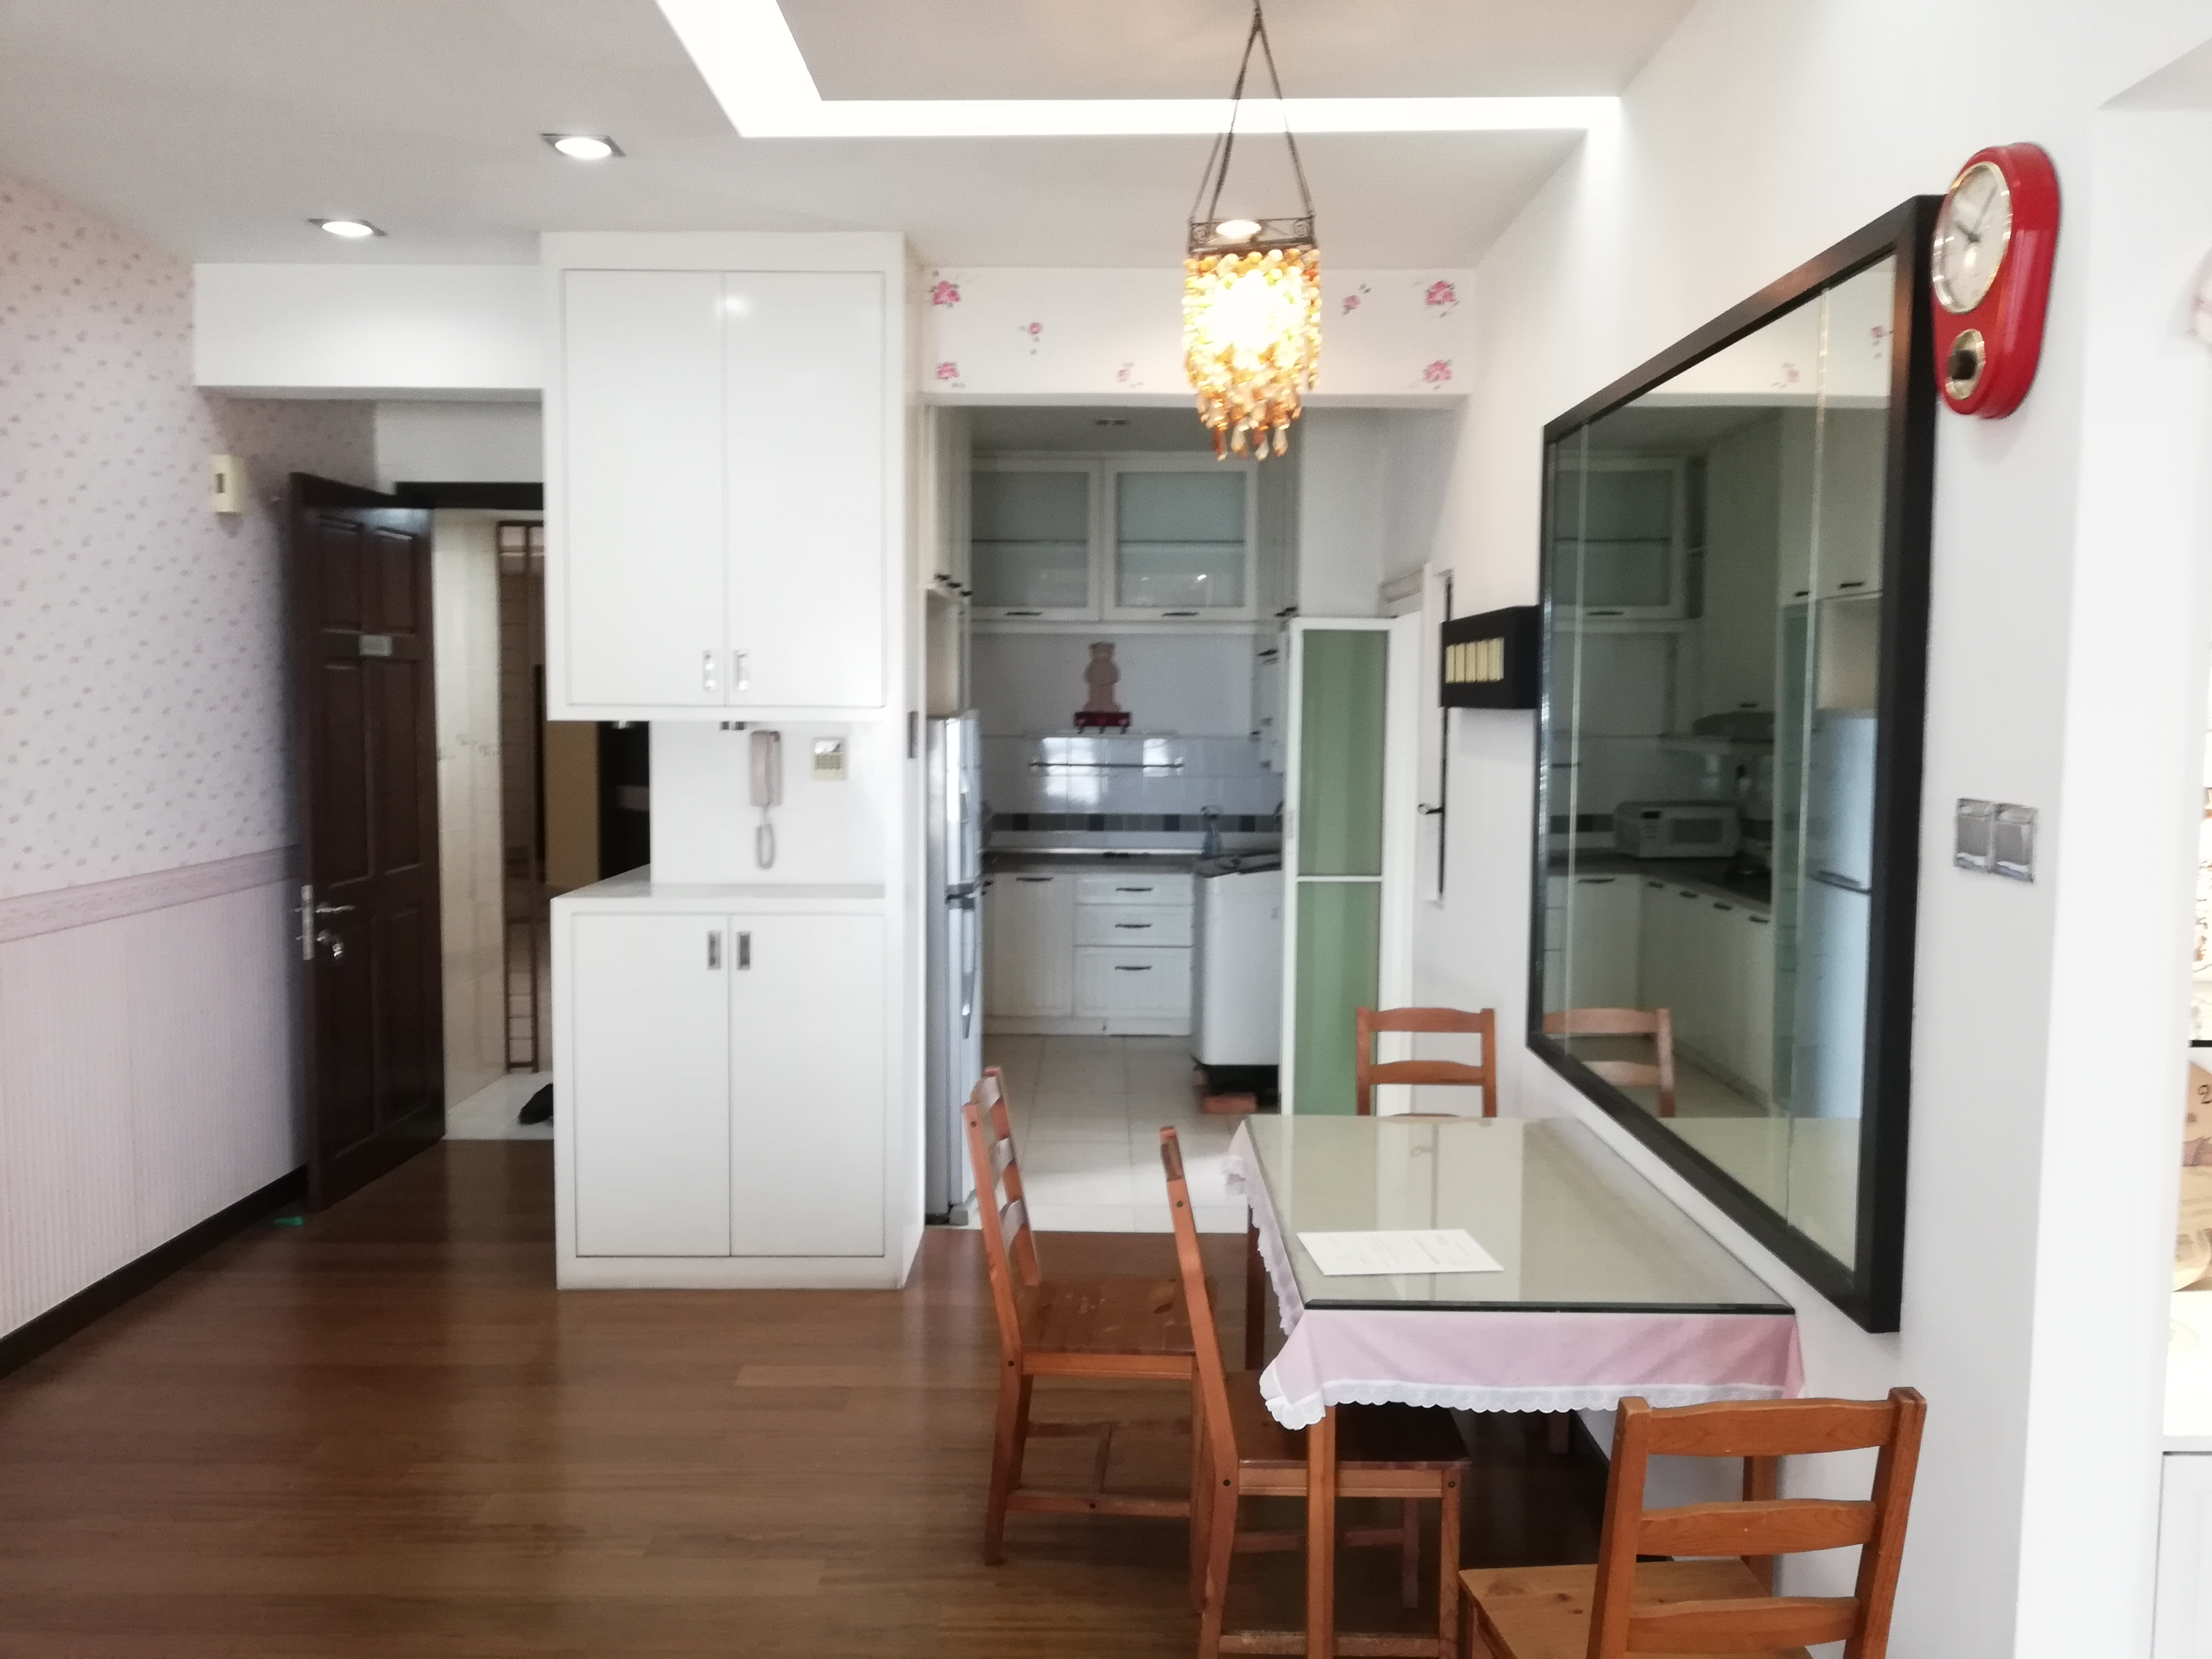 [SALE] NADIA Desa ParkCity / 1163 sq.ft / 2+1R2B / Fully furnished – RM860,000